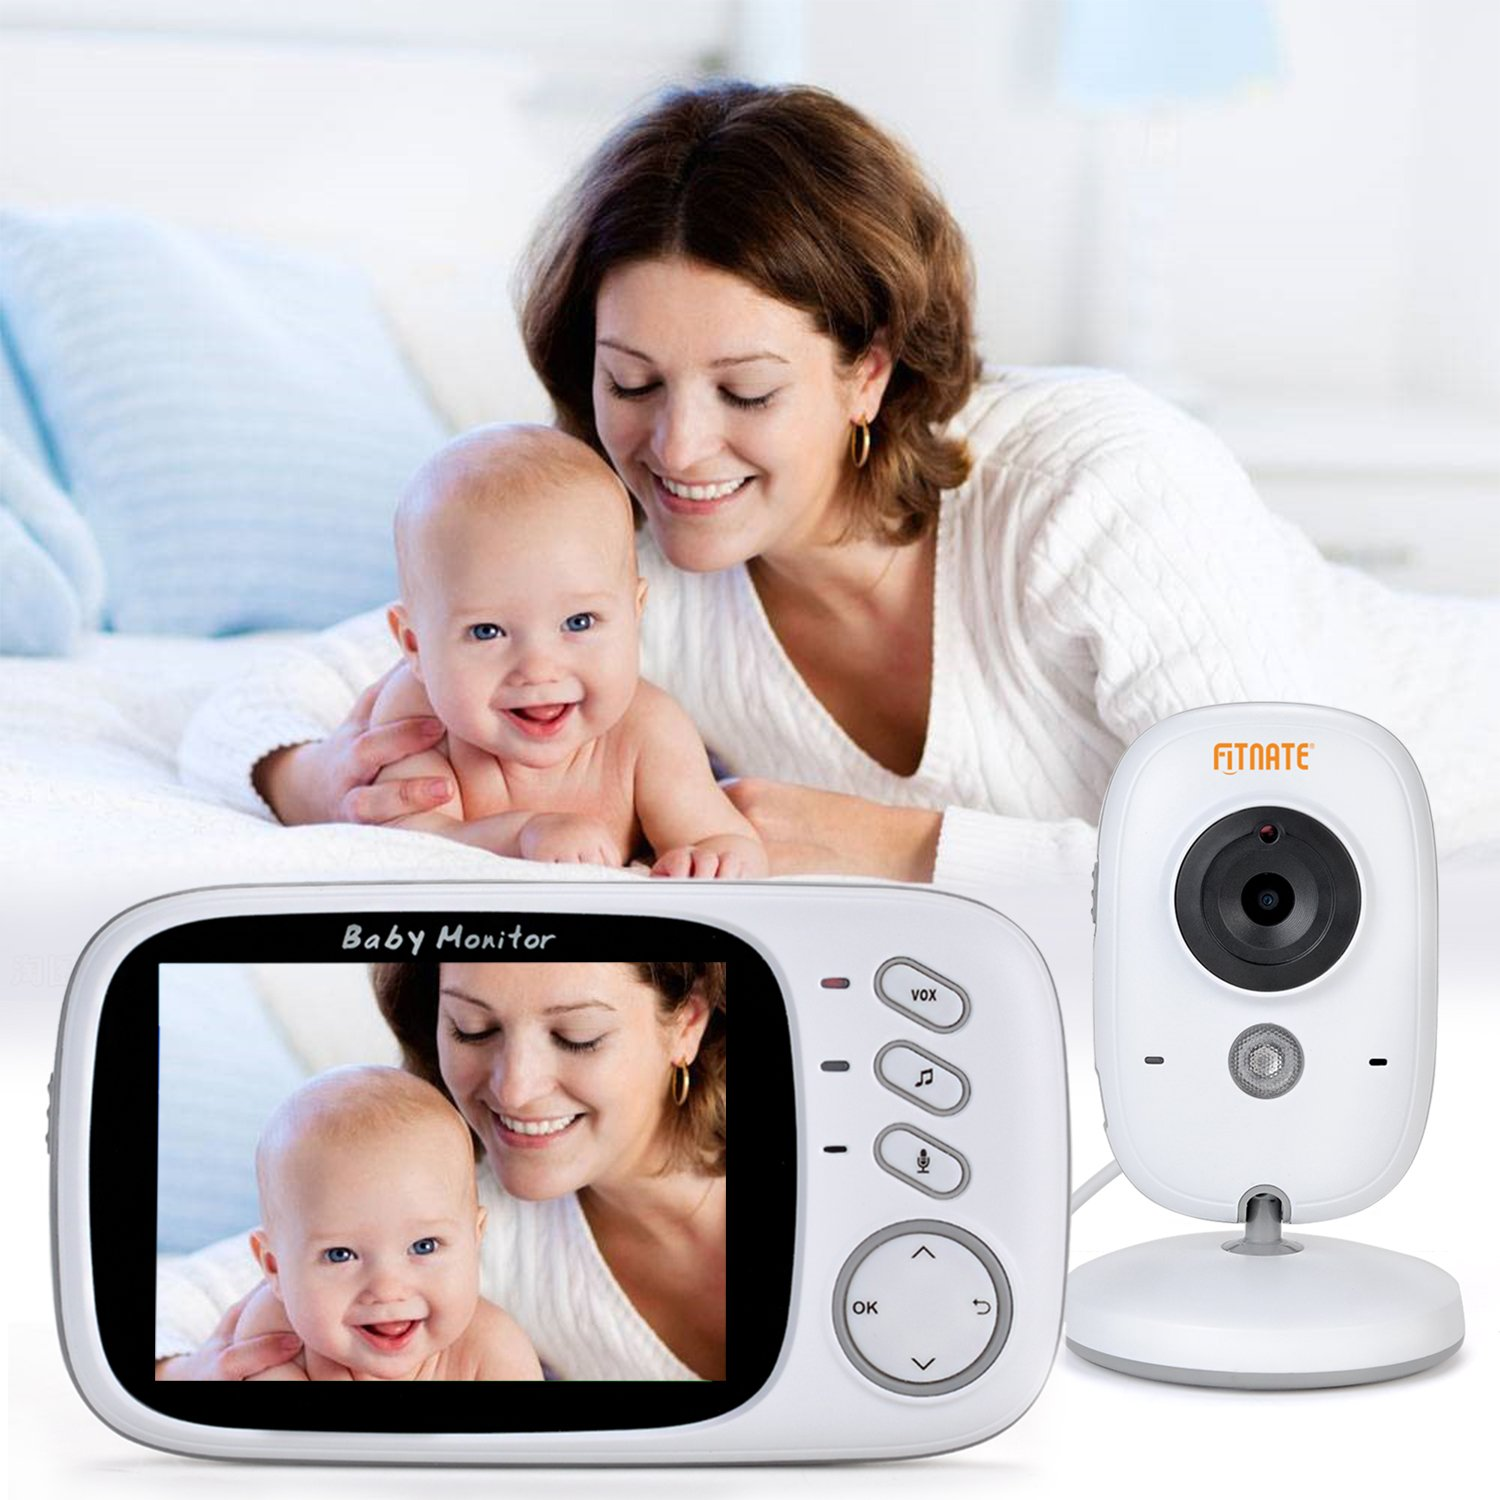 912344e3091e1 Amazon.com   FITNATE Video Baby Monitor with 3.4inch LCD Display Wireless  Digital Camera Night Vision Temperature Monitoring 2 Way Talkback System